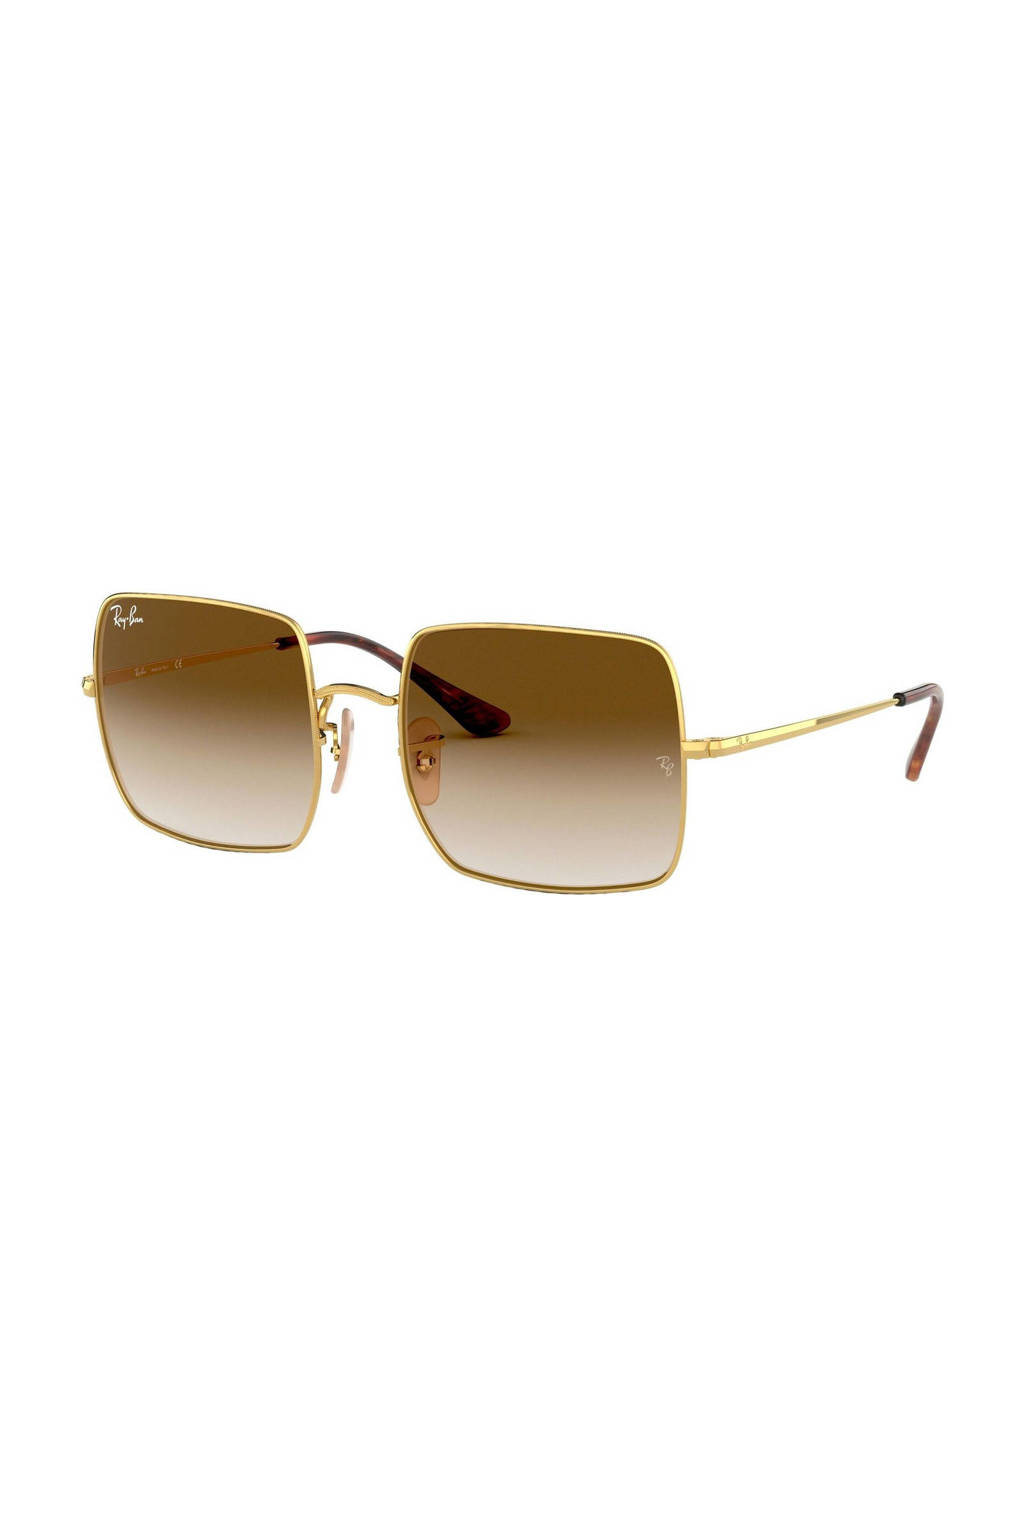 Ray-Ban zonnebril 0RB1971, Bruin